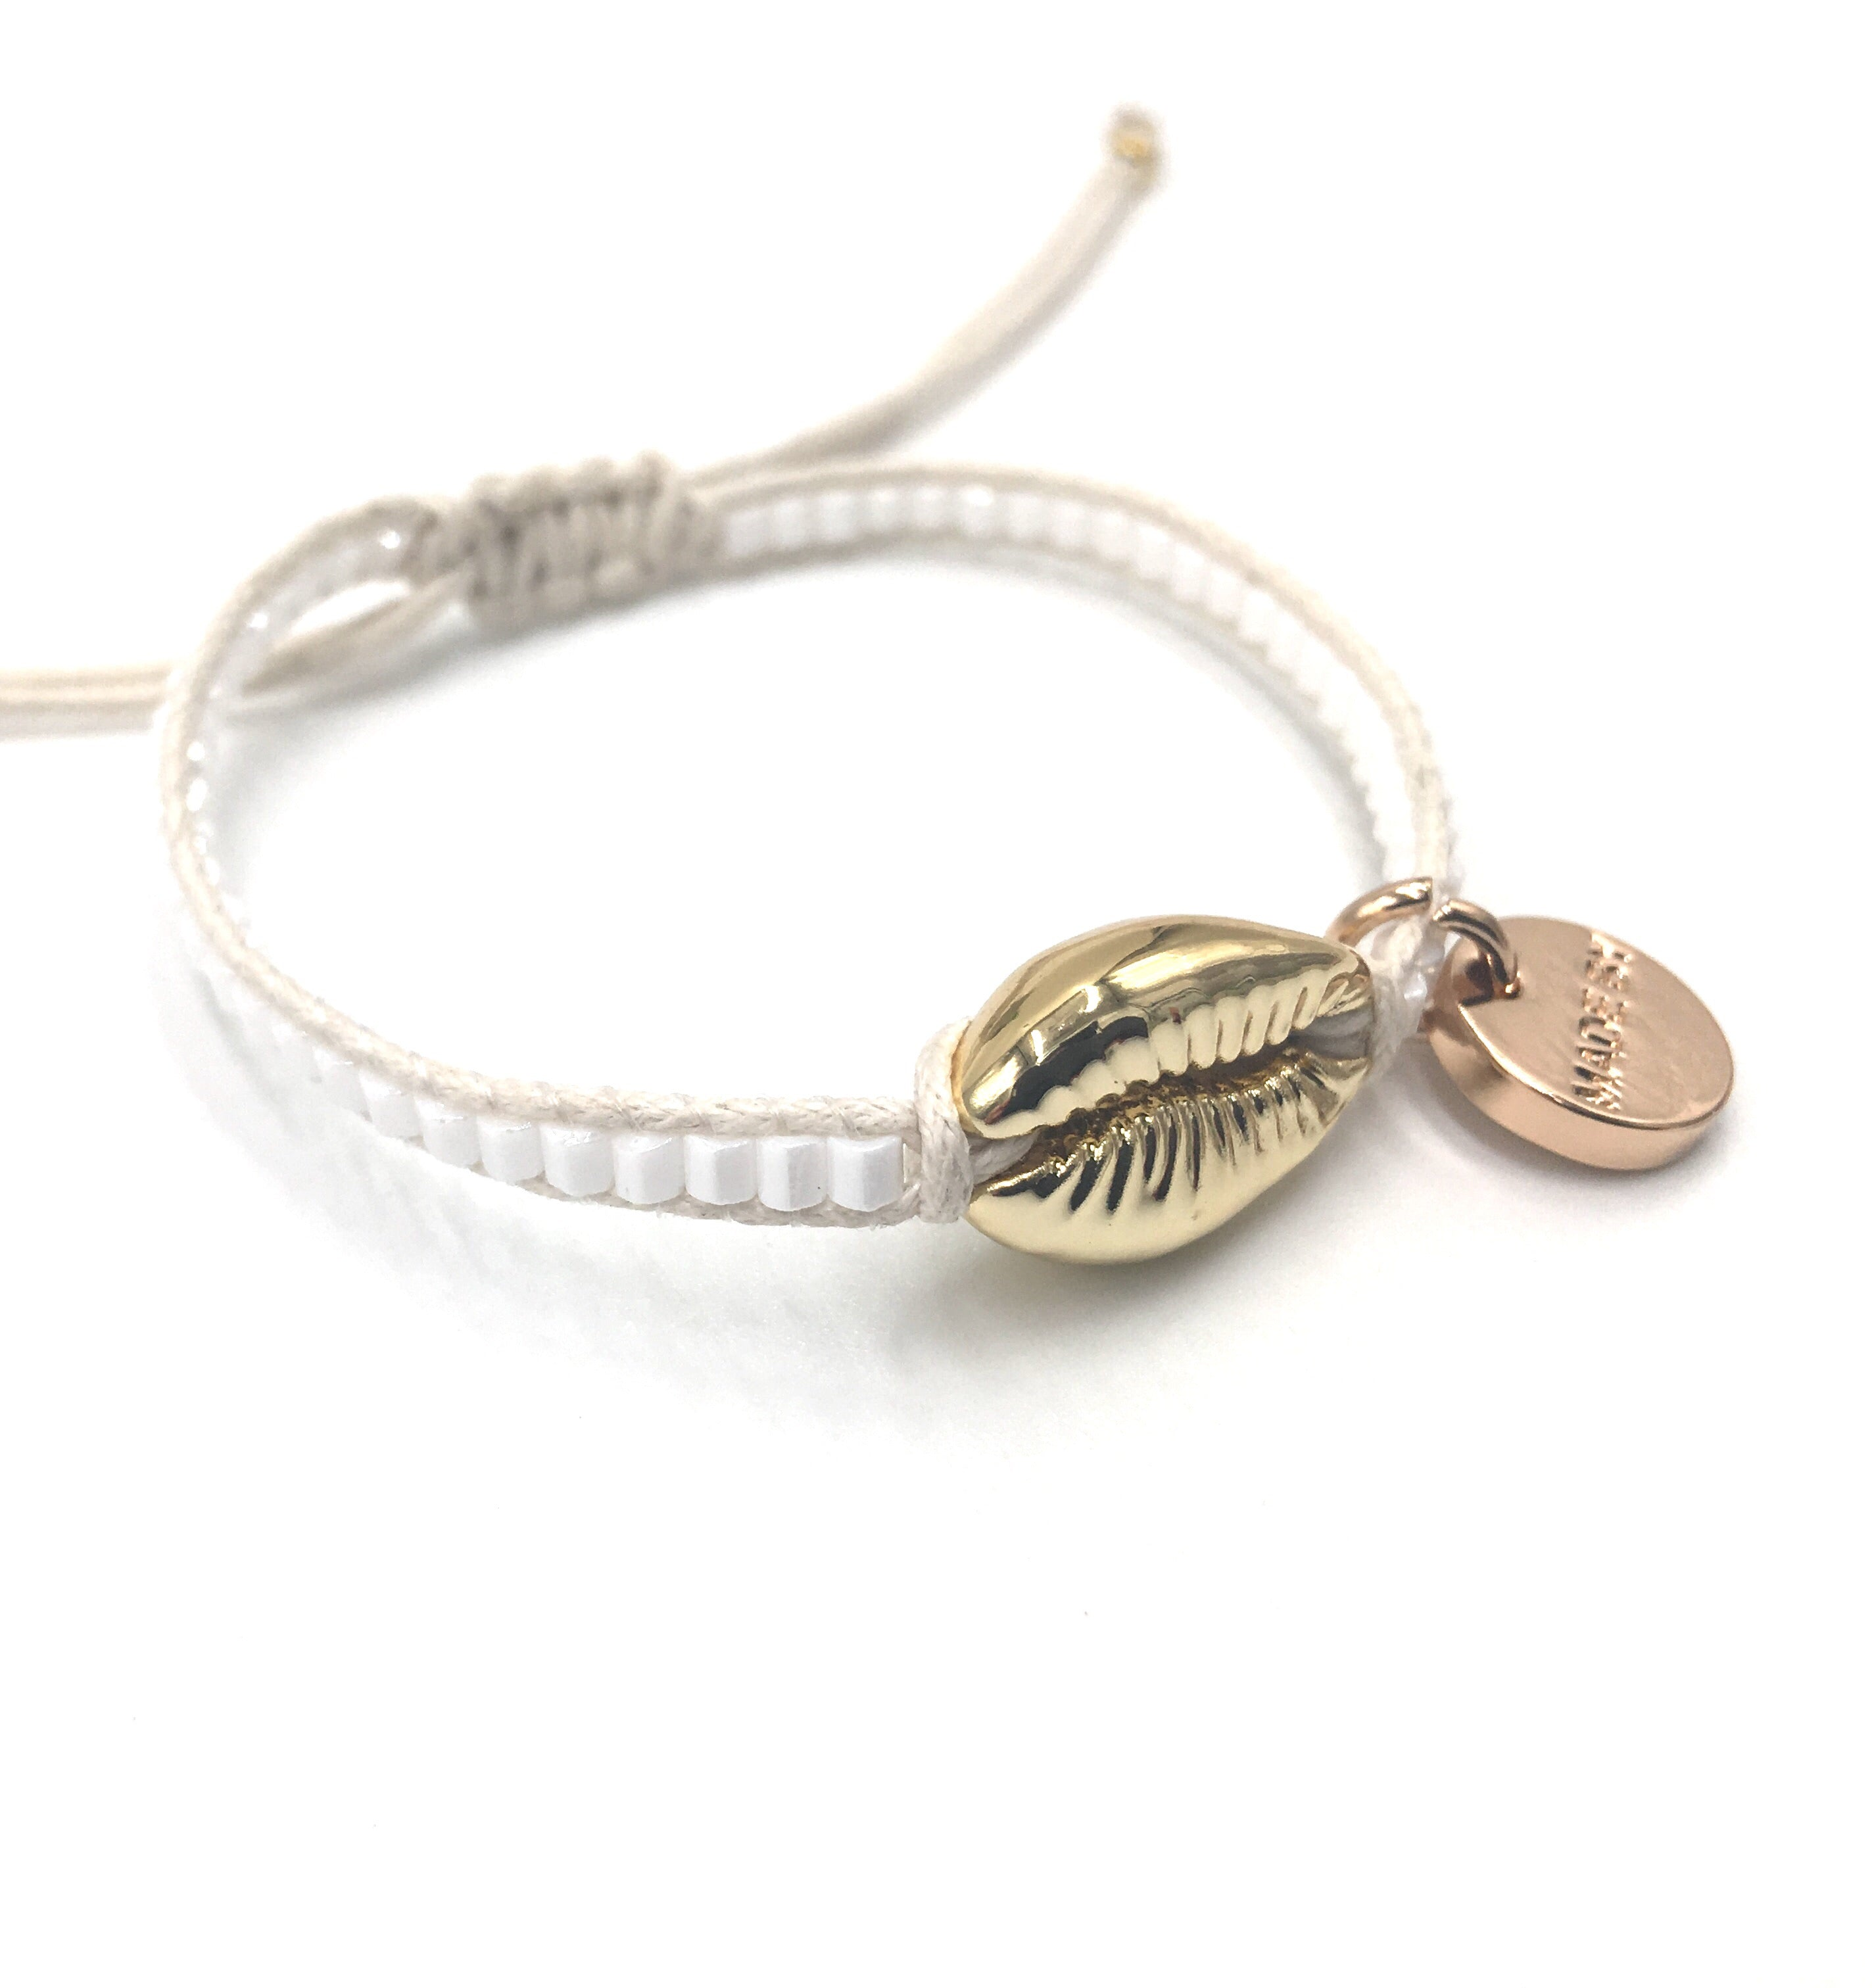 Gold Shell bracelet, white seed beads, offwhite cord